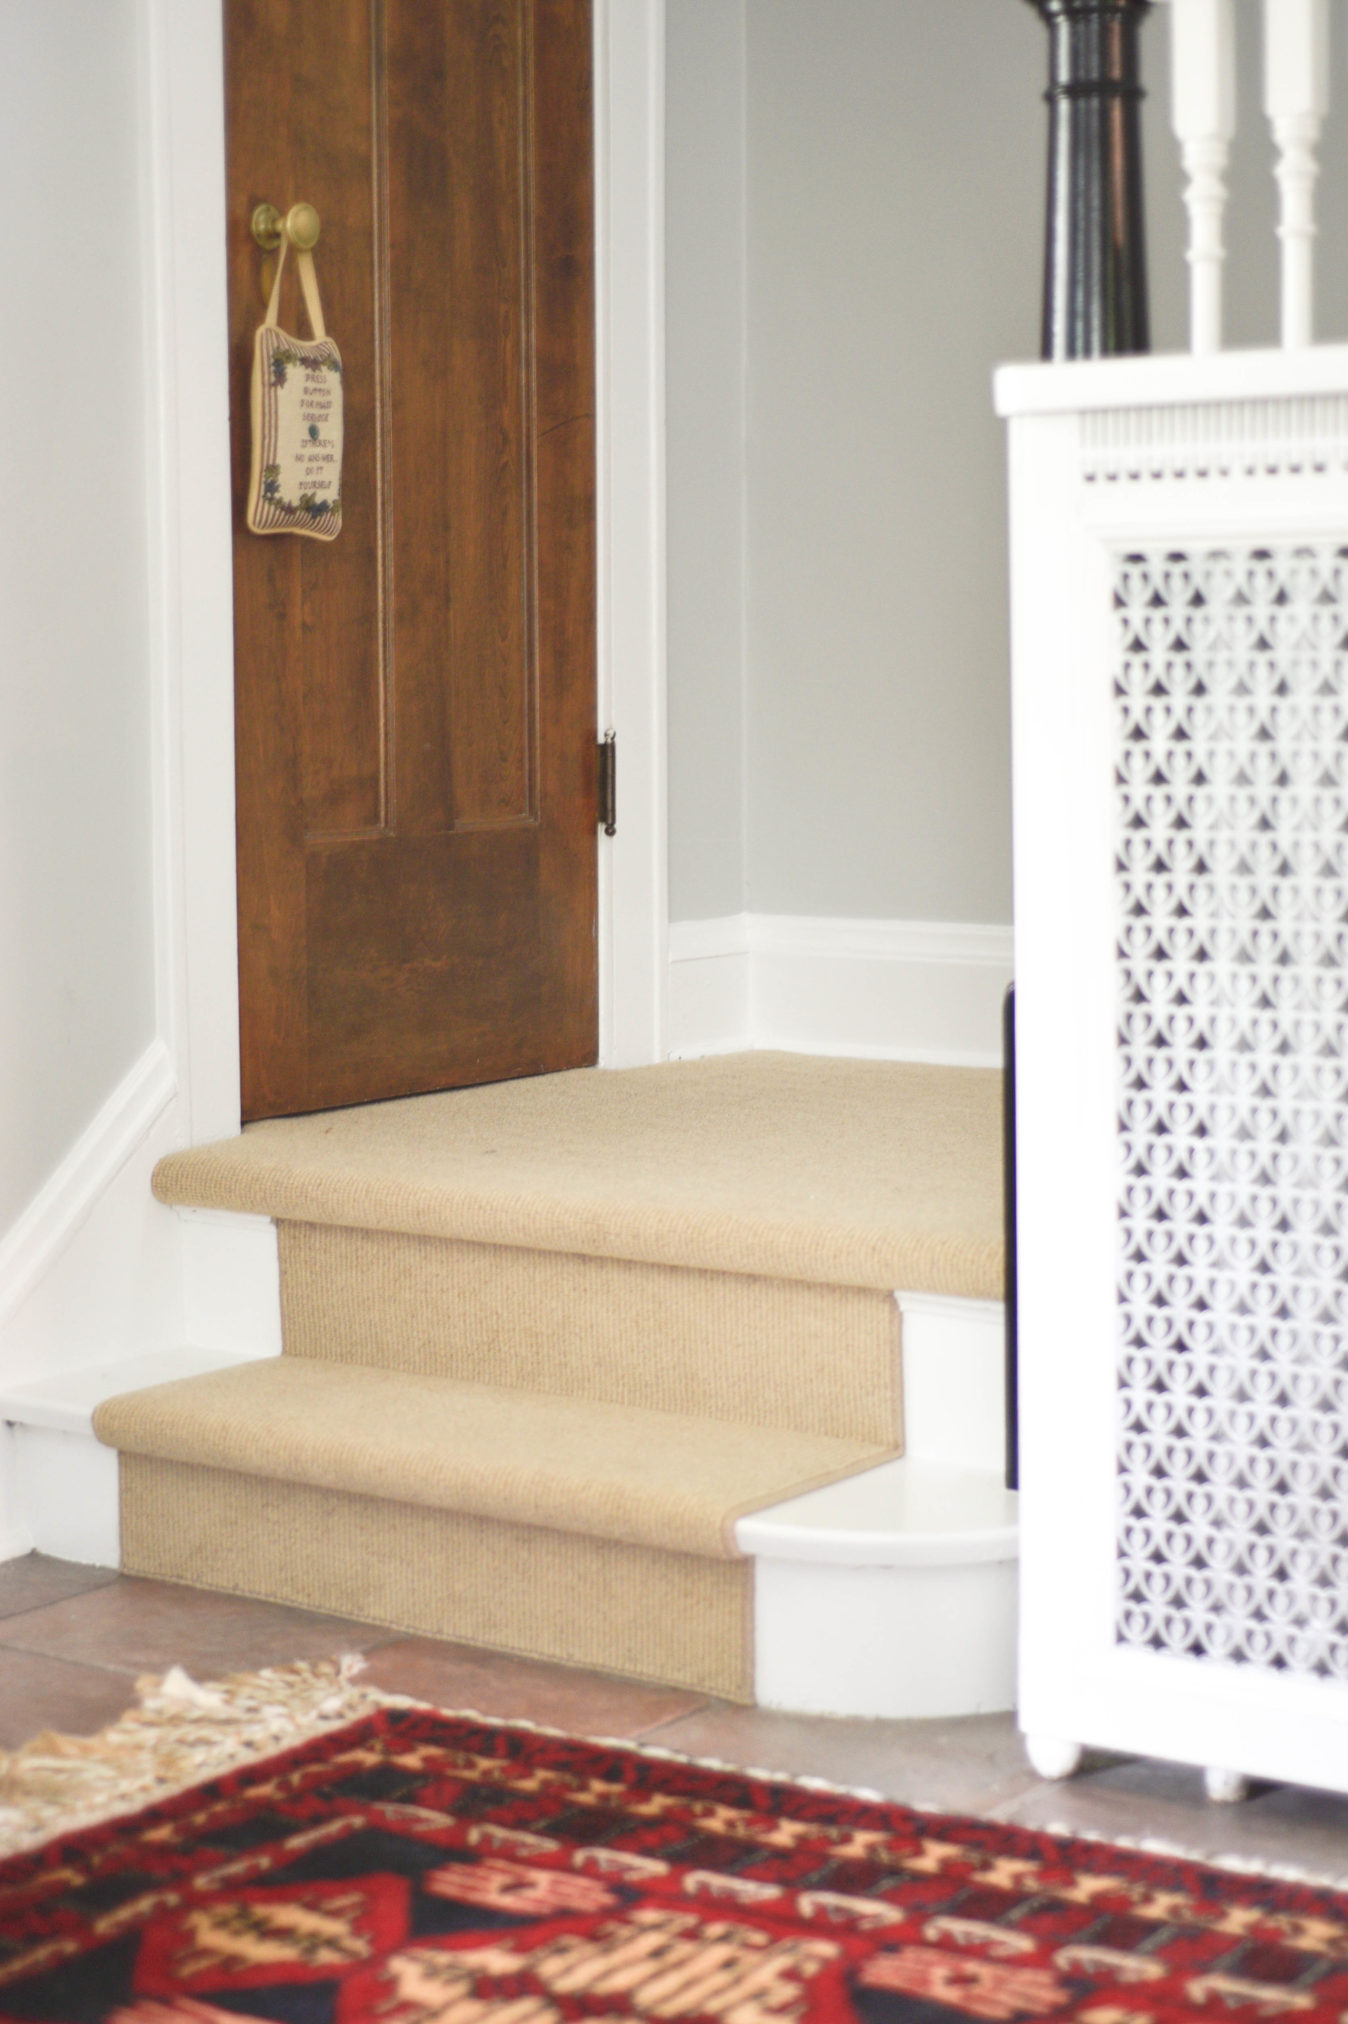 Home Bloggers Home Tour entryway styling with wool staircase runner and black banister www.homewithkeki.com